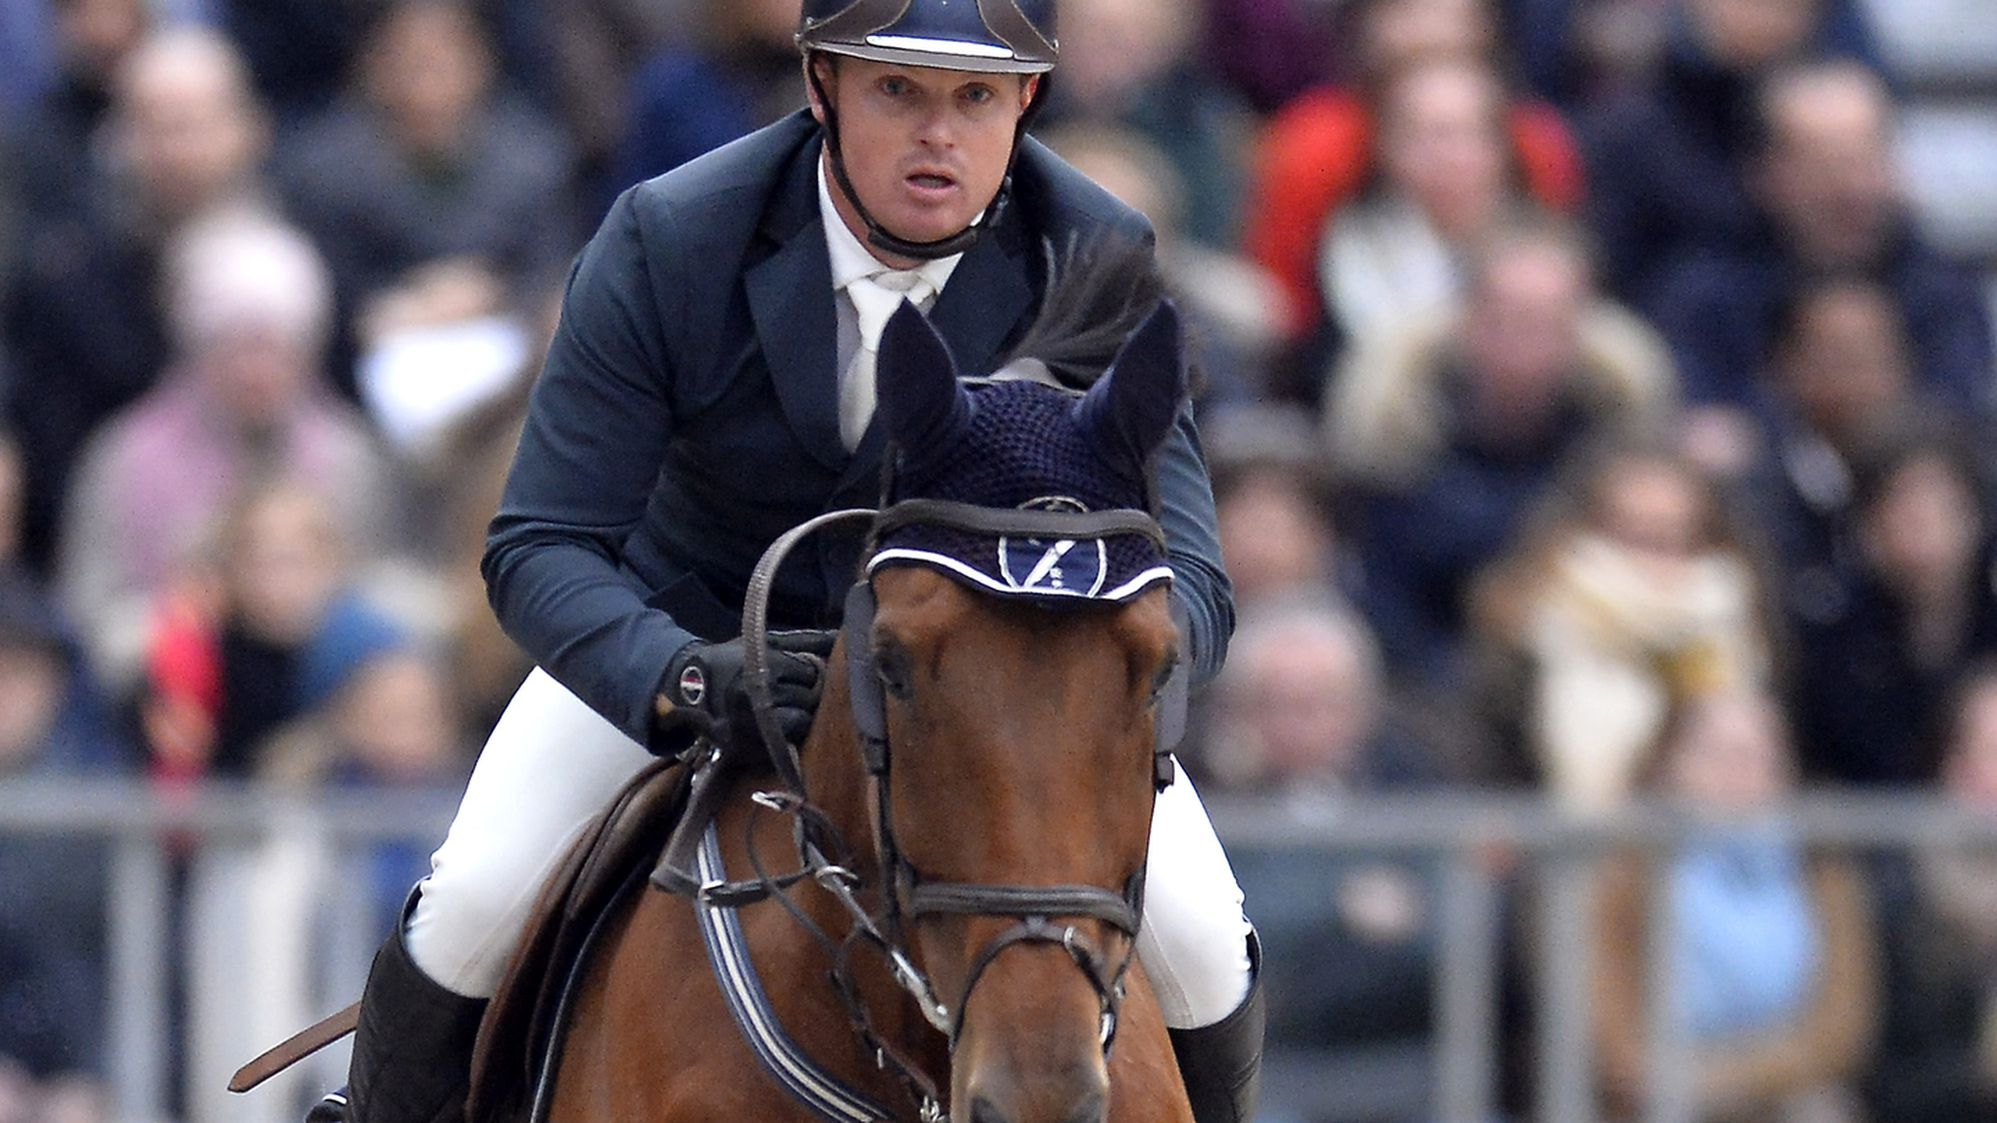 Tokyo Olympics 2021: Banned Aussie equestrian rider 'upset and remorseful' after positive cocaine test